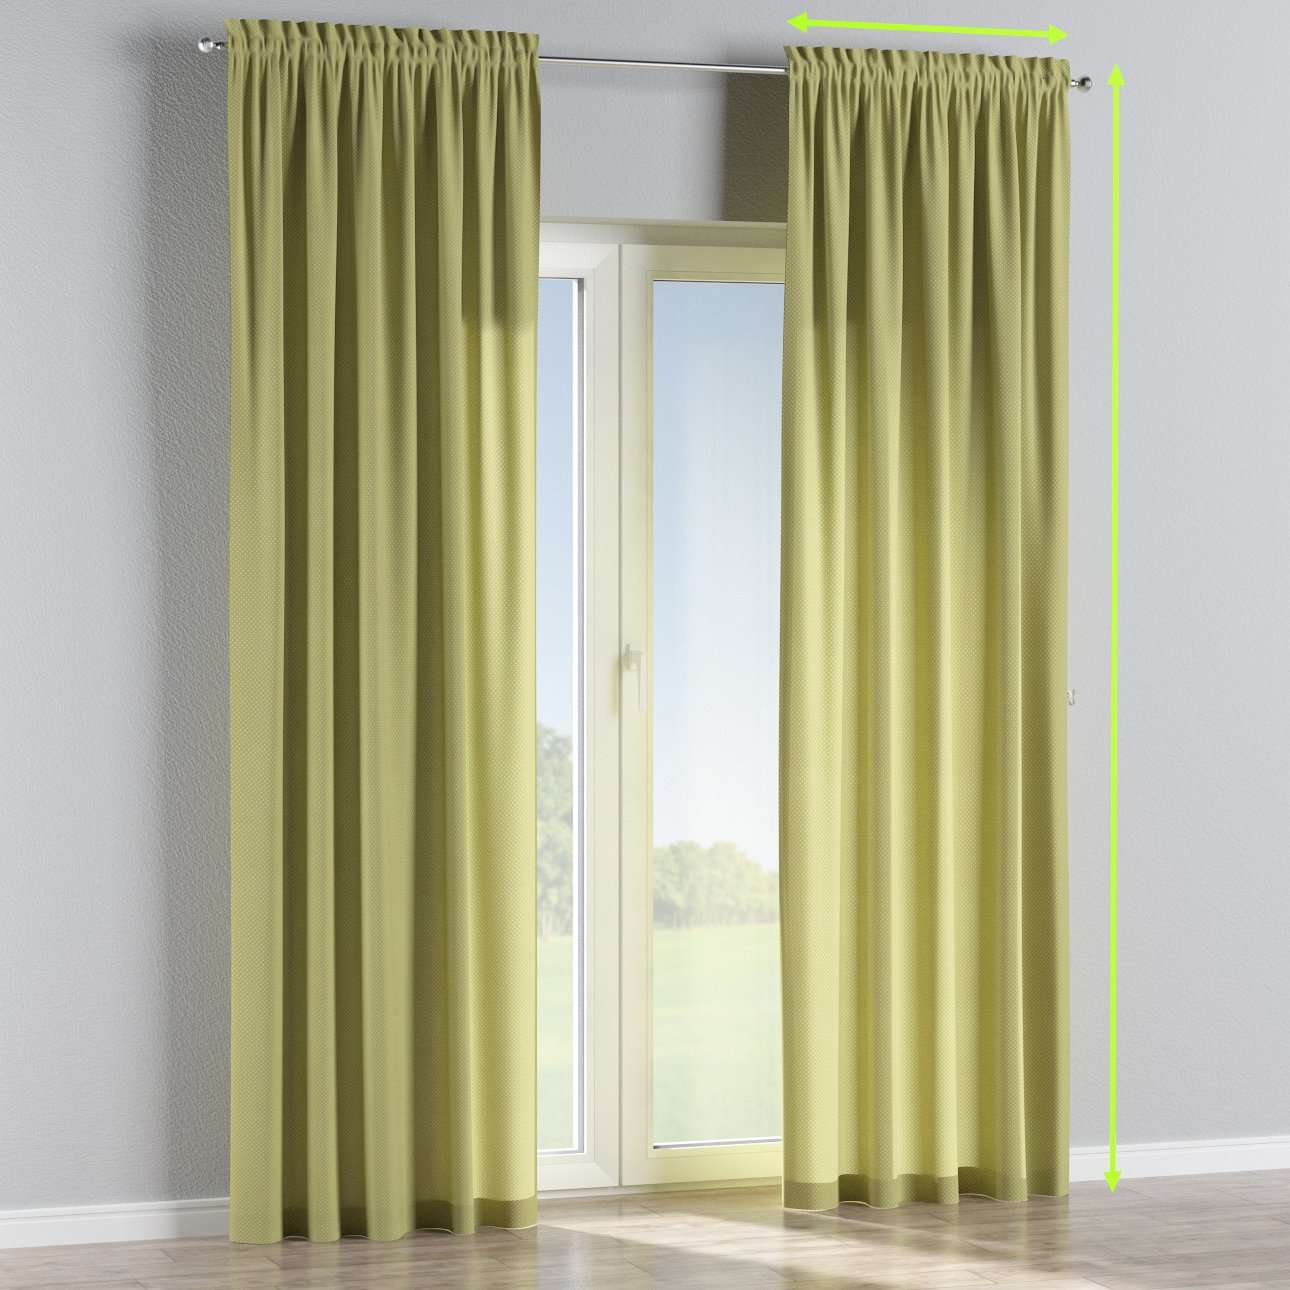 Slot and frill lined curtains in collection Ashley, fabric: 137-51